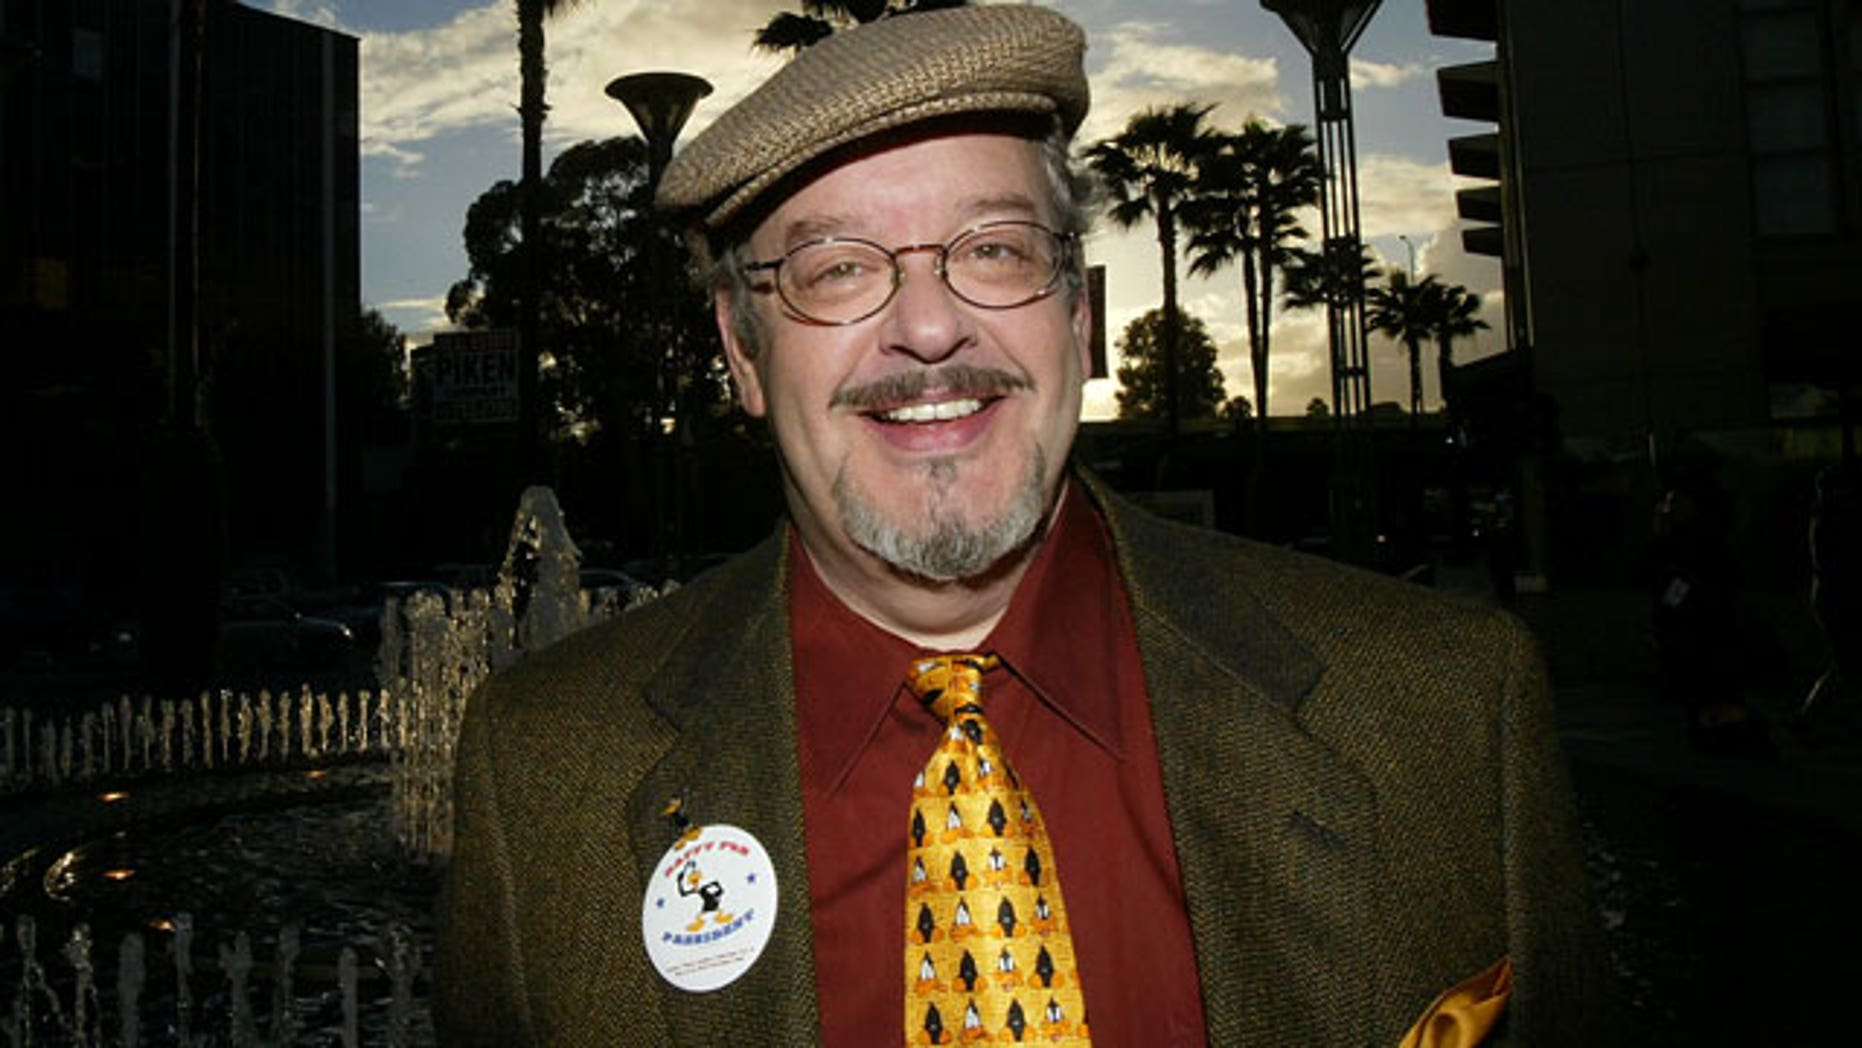 """LOS ANGELES - OCTOBER 20:  Joe Alaskey, the voice of Daffy Duck, attends the """"Daffy Duck for President Campaign Rally"""" press conference to celebrate the release of the Looney Tunes Golden Collection Volume Two DVD at Sherman Oaks Galleria October 20, 2004 in Los Angeles, California. (Photo by Mark Mainz/Getty Images)"""